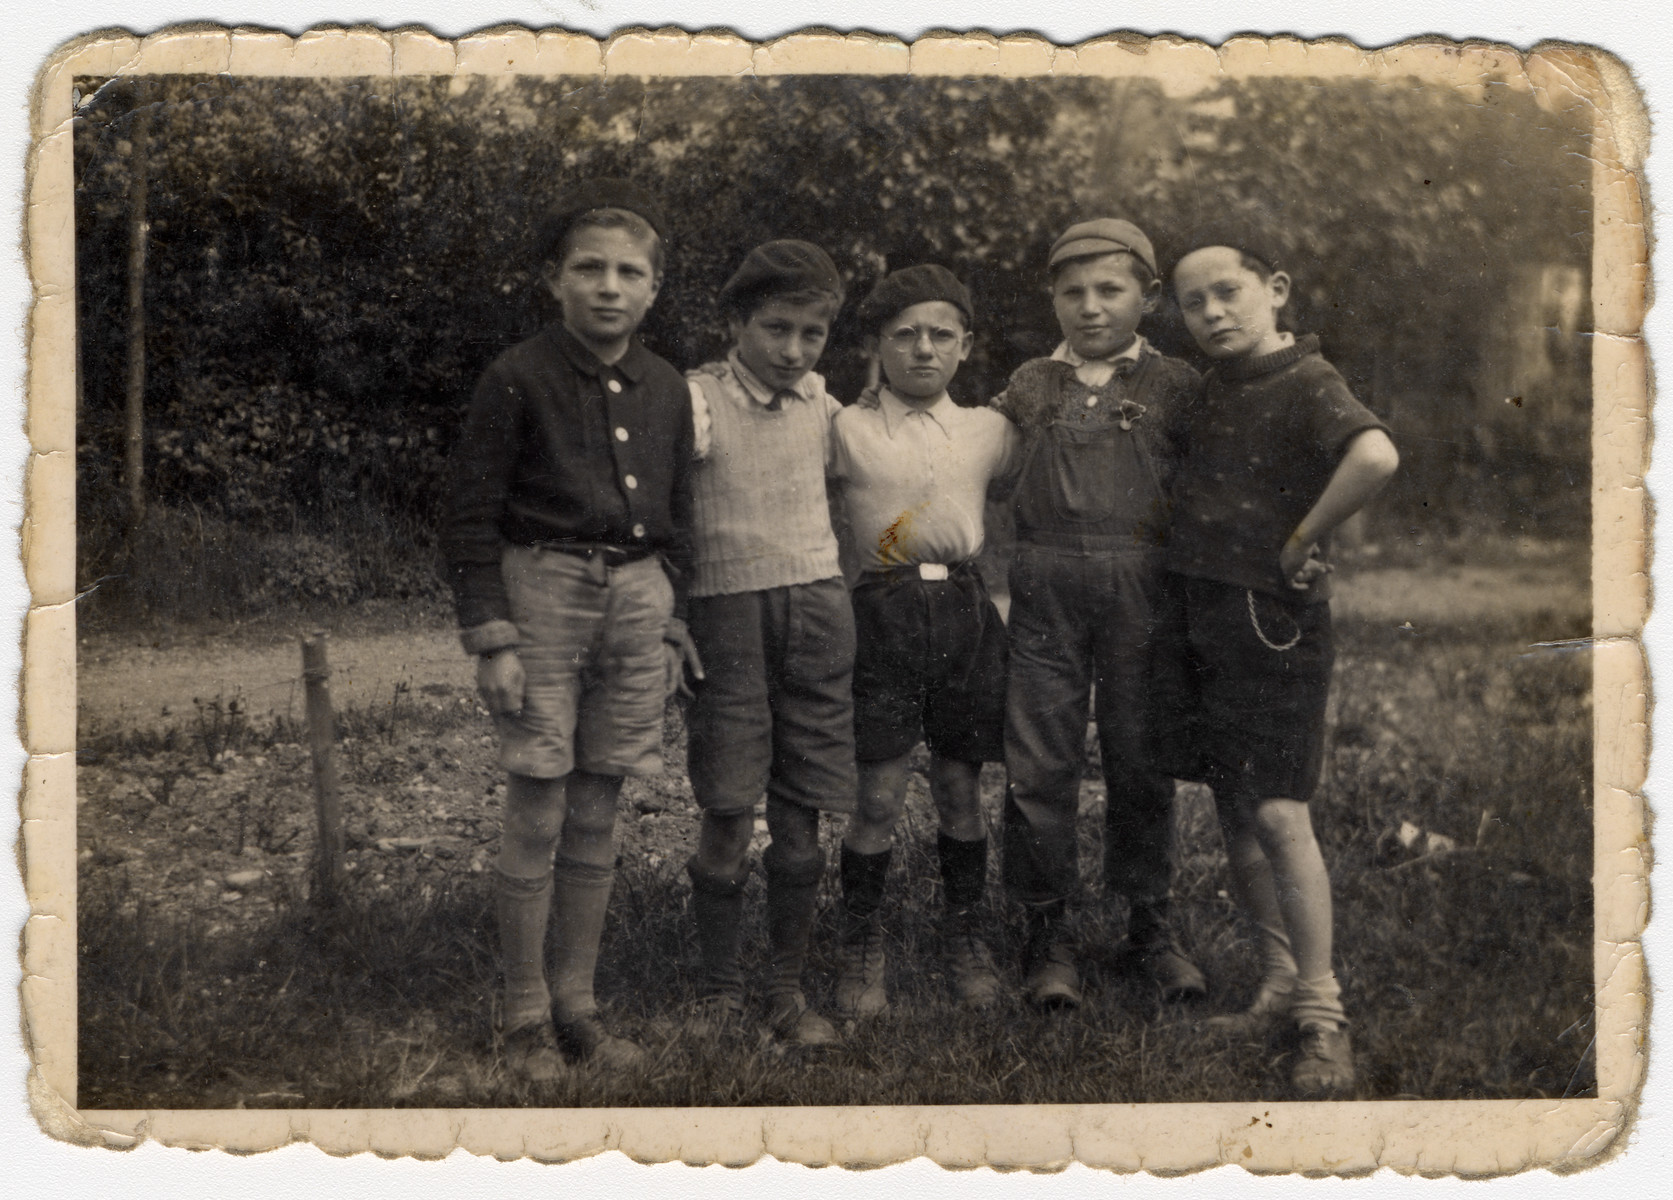 Group portrait of five boys in the Chateau des Morelles childrens' home.    Charles Rosenblat is pictured in the center.  Markus Horowitz may be on the far right. The boy second from the right may be Bernd Boettigheimer.